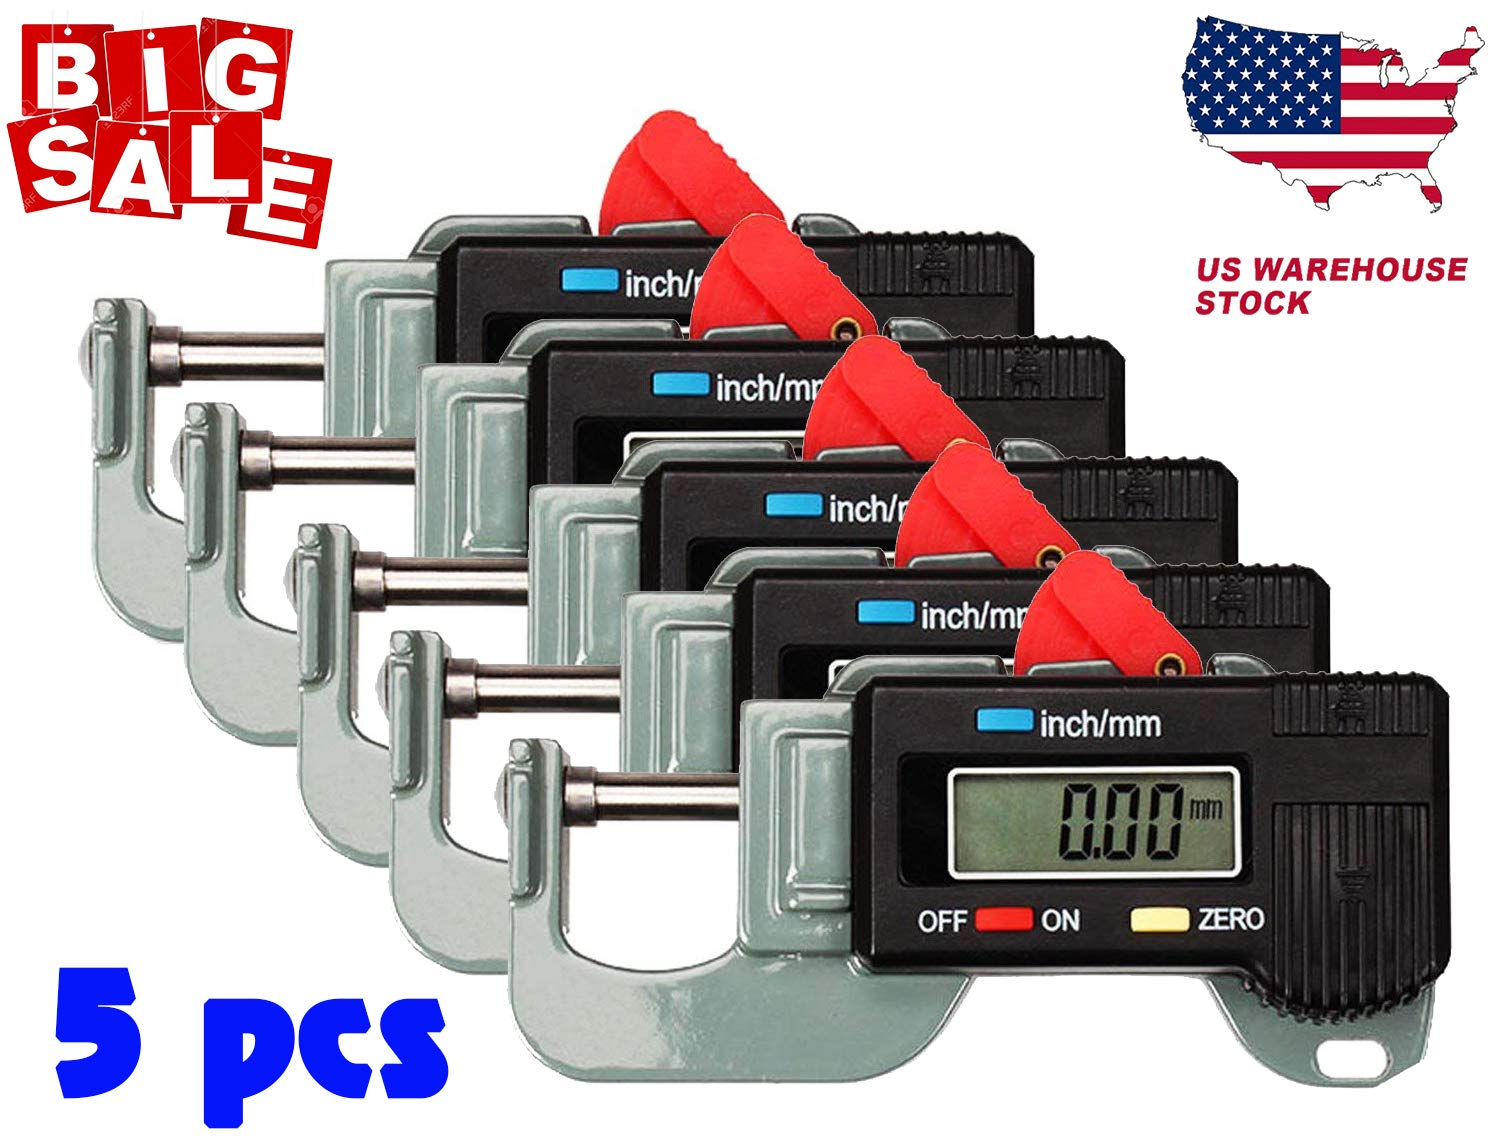 1/3/5PCS Portable Precise Digital Thickness Gauge Meter Tester Micrometer 0 to 12.7m Caliper (5PCS)